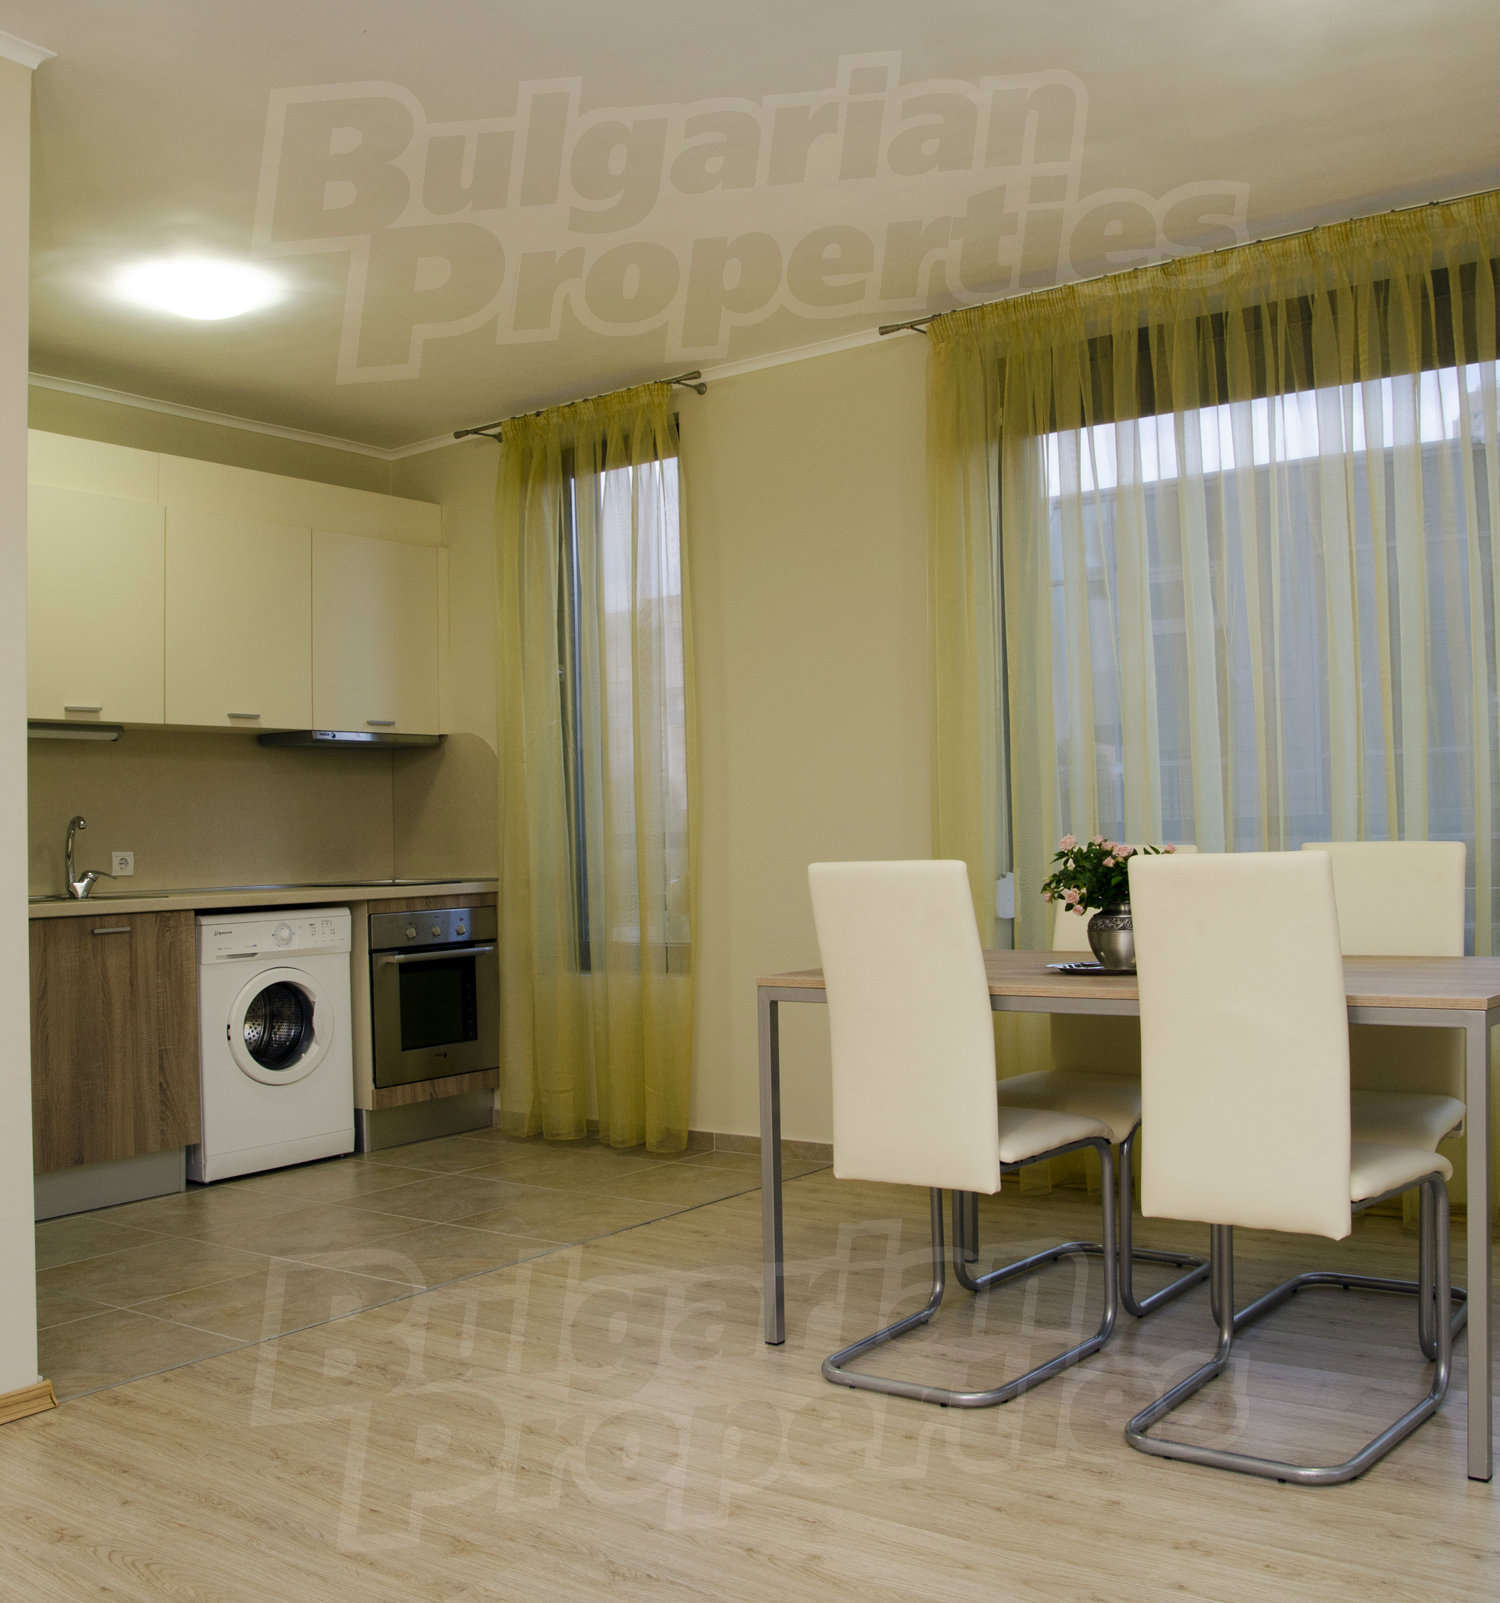 2 Bedroom Apartment For Rent In Nyc: 2-bedroom Apartment For Rent In Royal City Plovdiv In